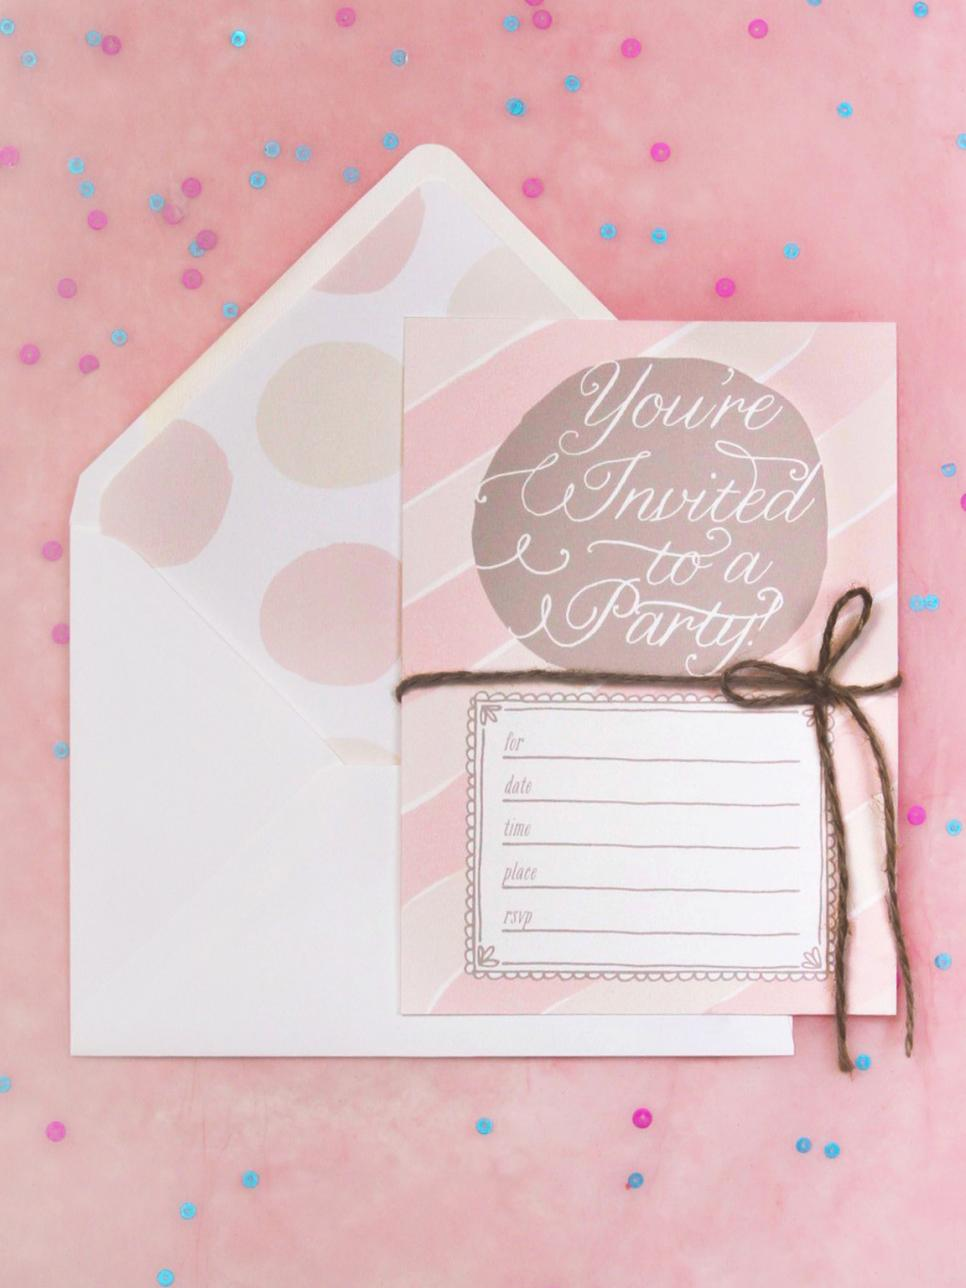 16 (free!) Printable Party Invitations For Any Occasion